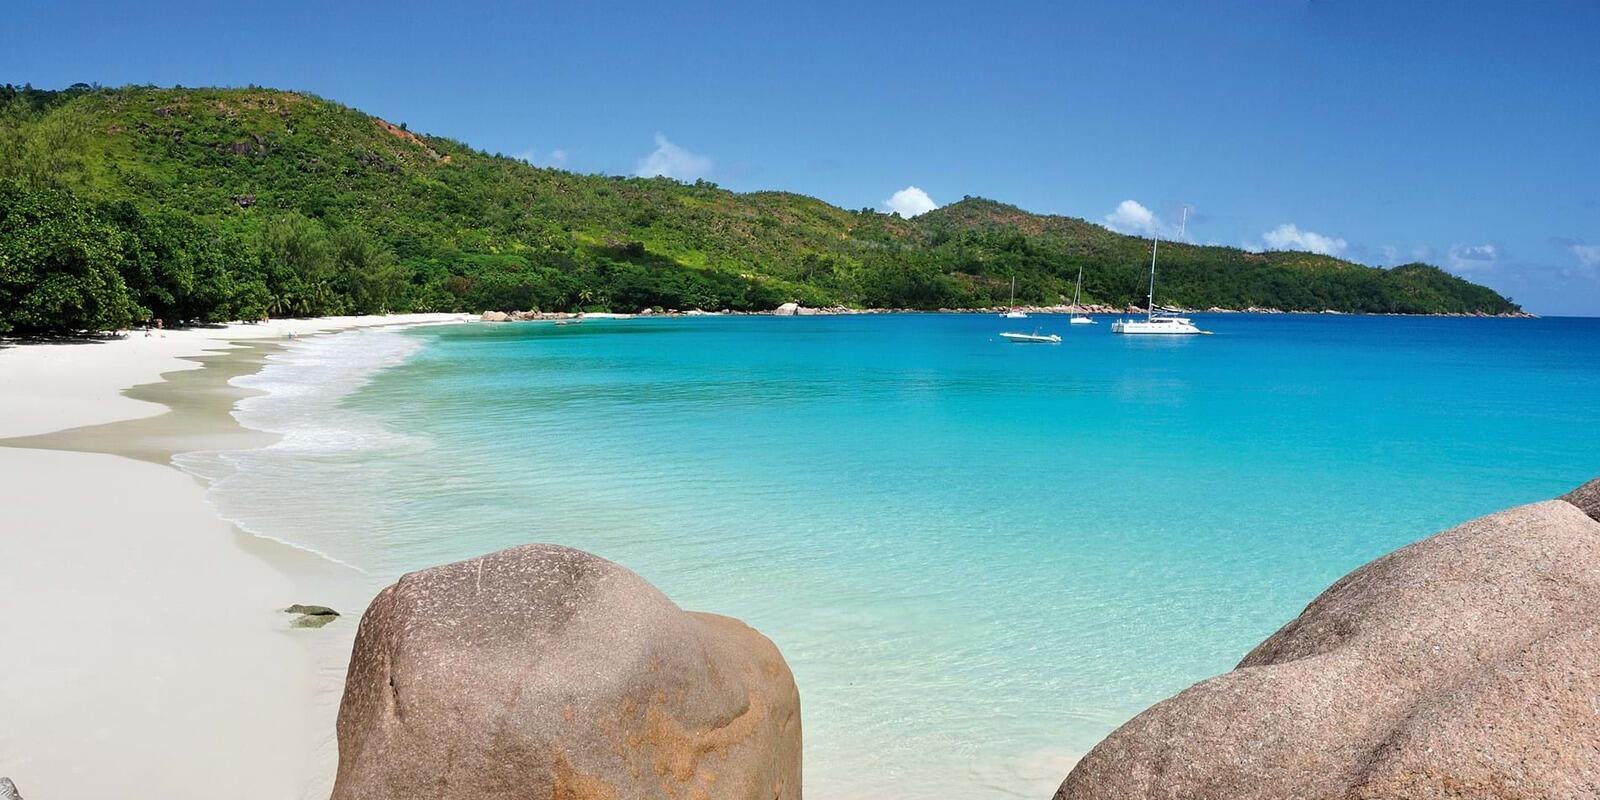 Join Us on a Seychelles Winter Escape - Private, Small Group Charter on Luxury Catamaran